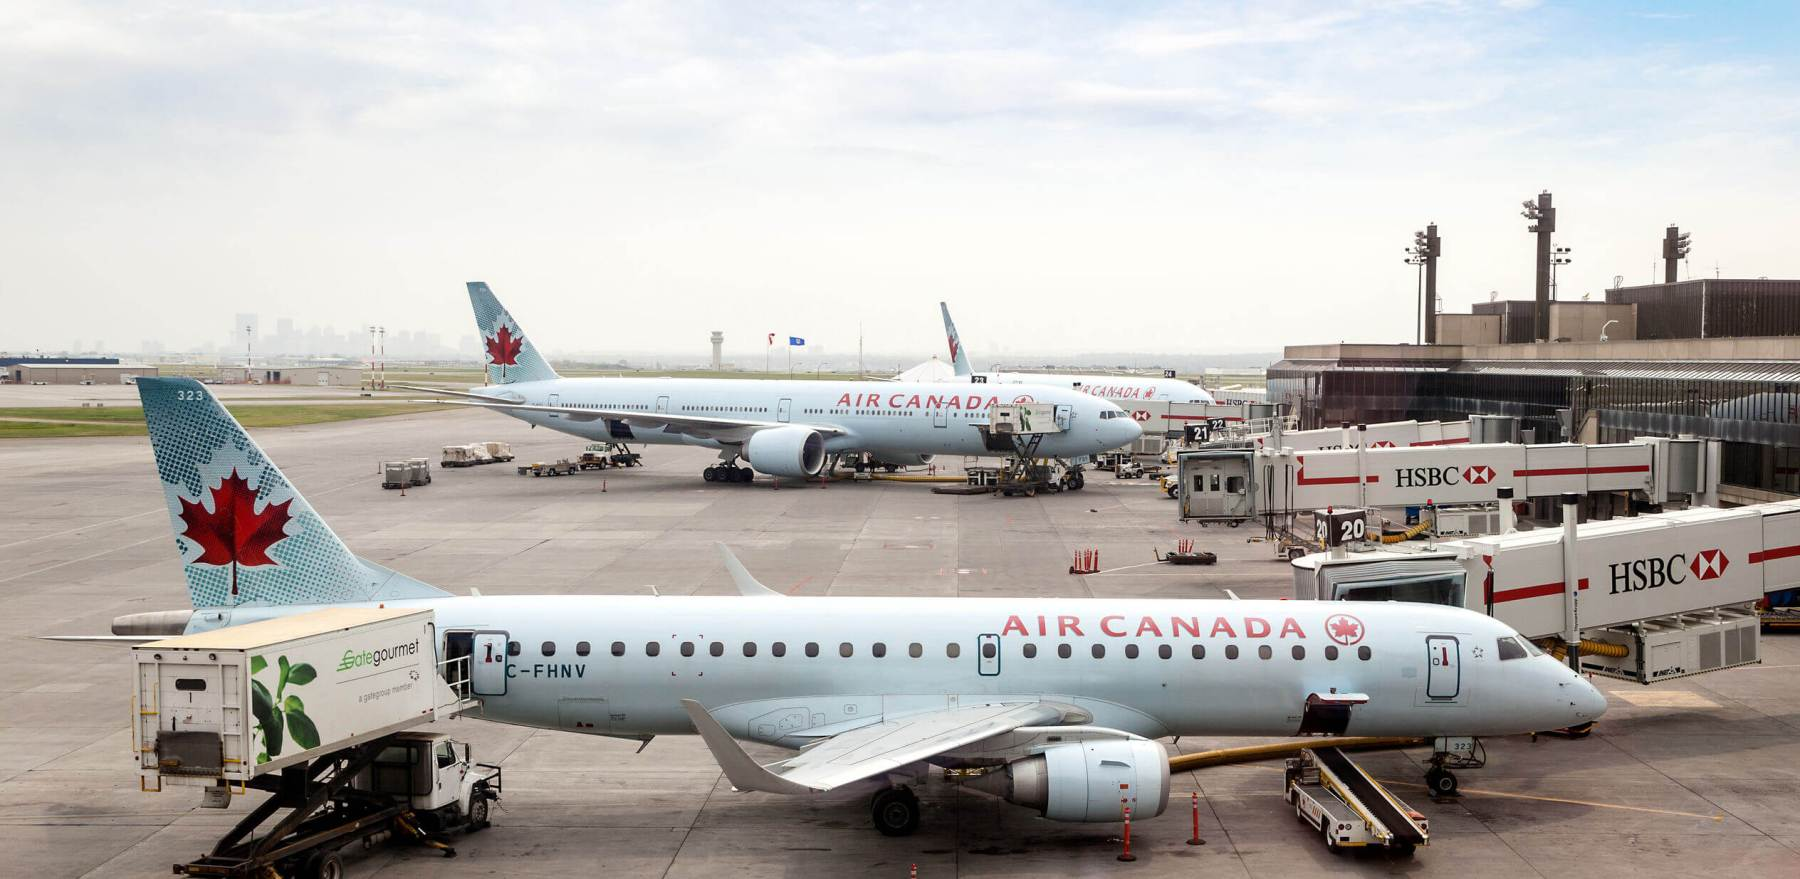 CALGARY, CANADA - JULY 18: Air Canada commercial planes on the tarmac of Calgary International Airport July 18, 2014. Opened in 1938, the airport offers non-stop flights to major cities in North America, Europe and East Asia.